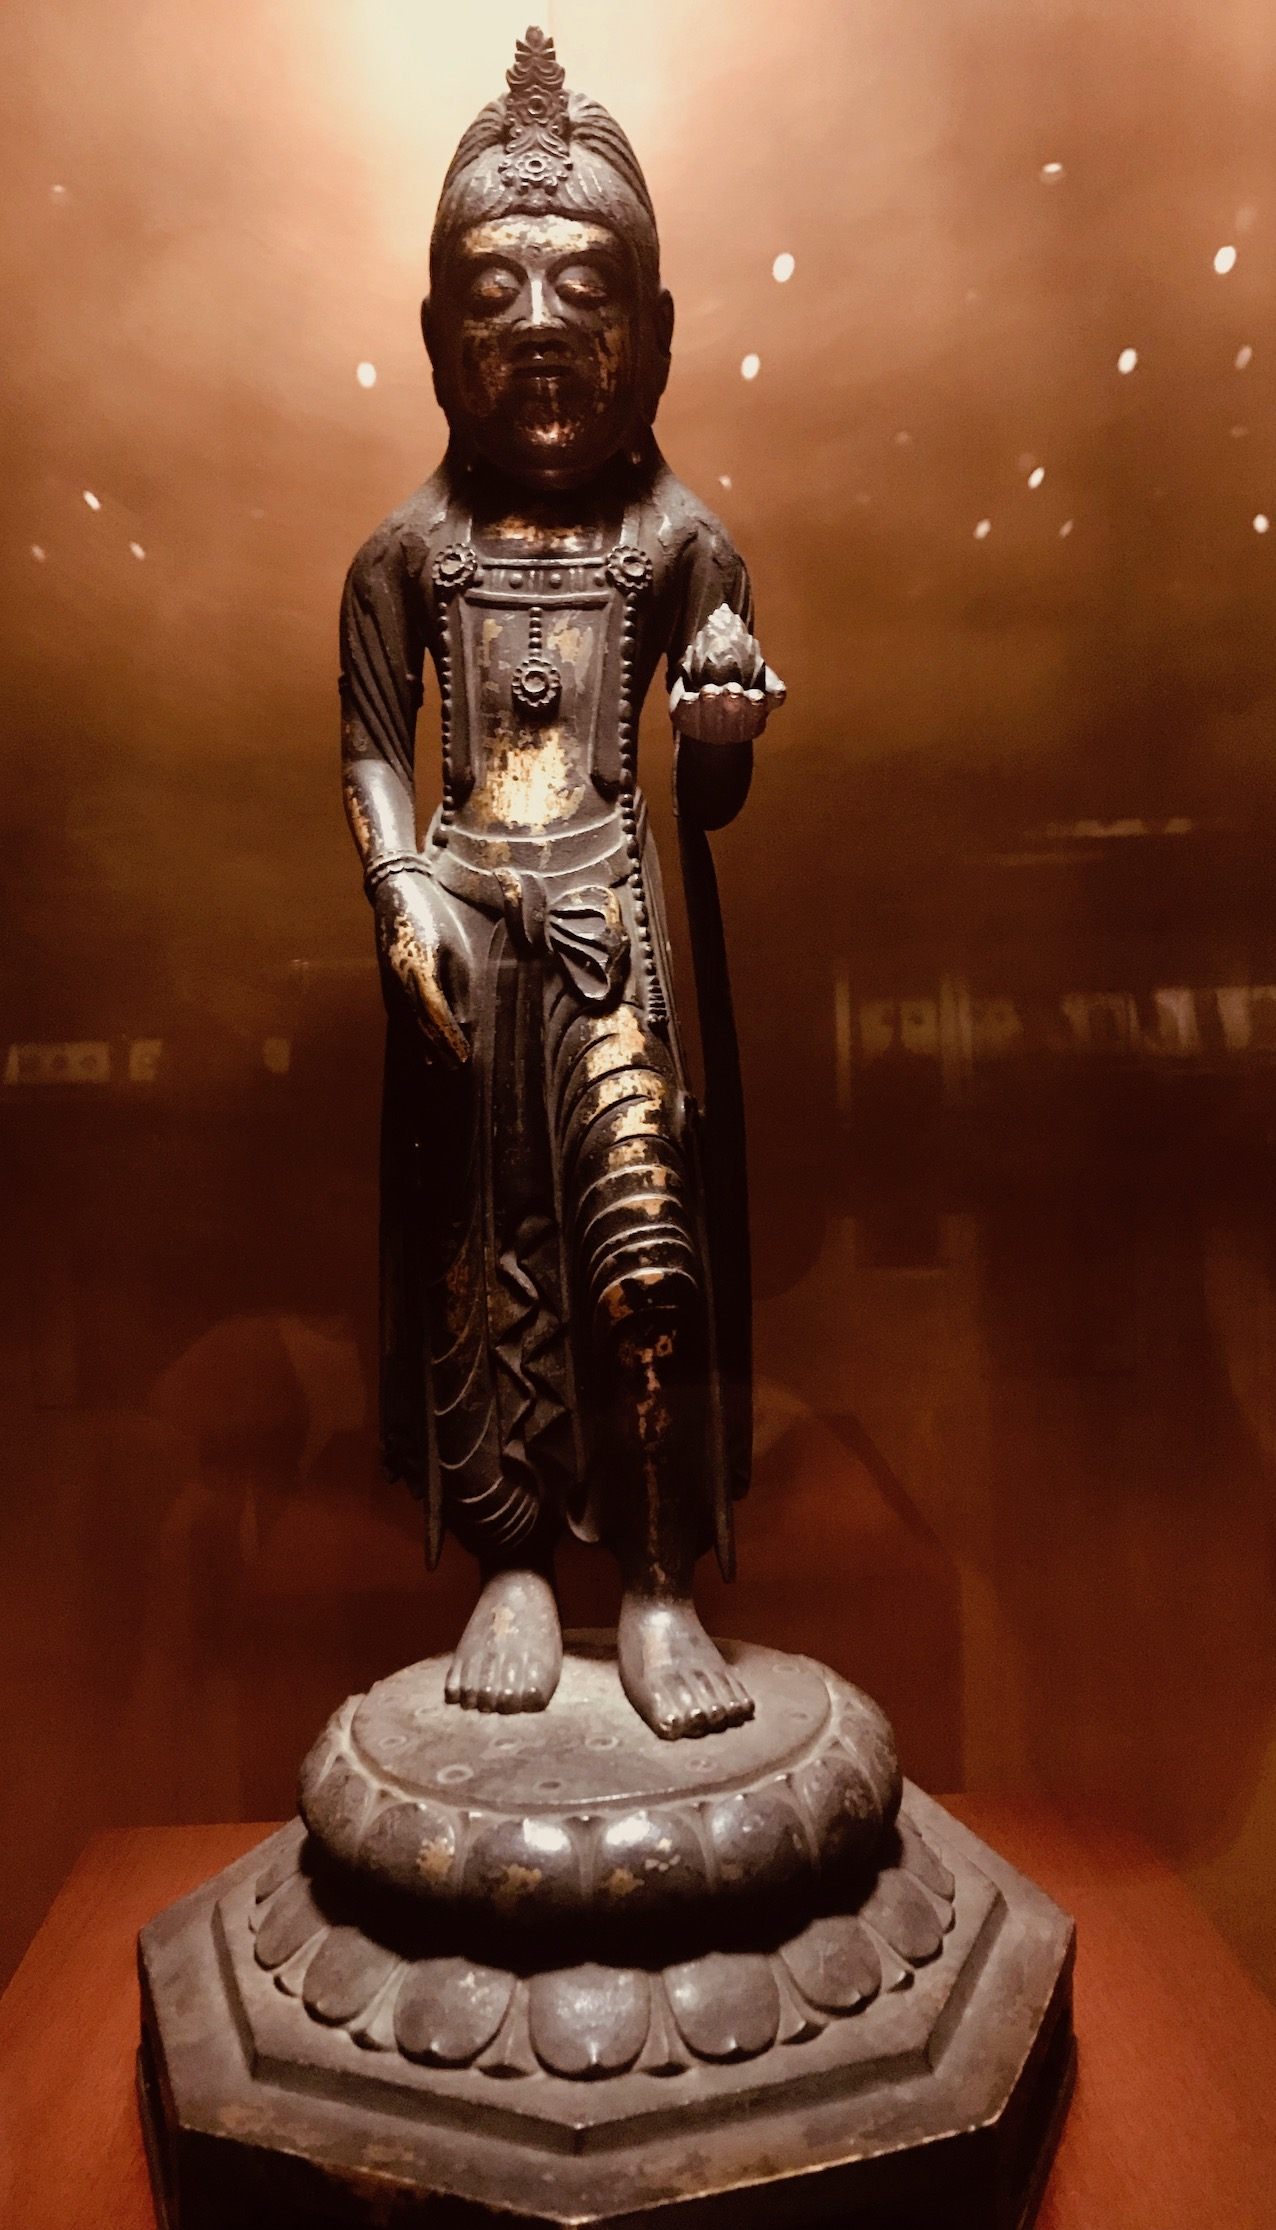 7th century gilt copper Buddha statue The Gallery of Horyuji Treasures Tokyo National Museum